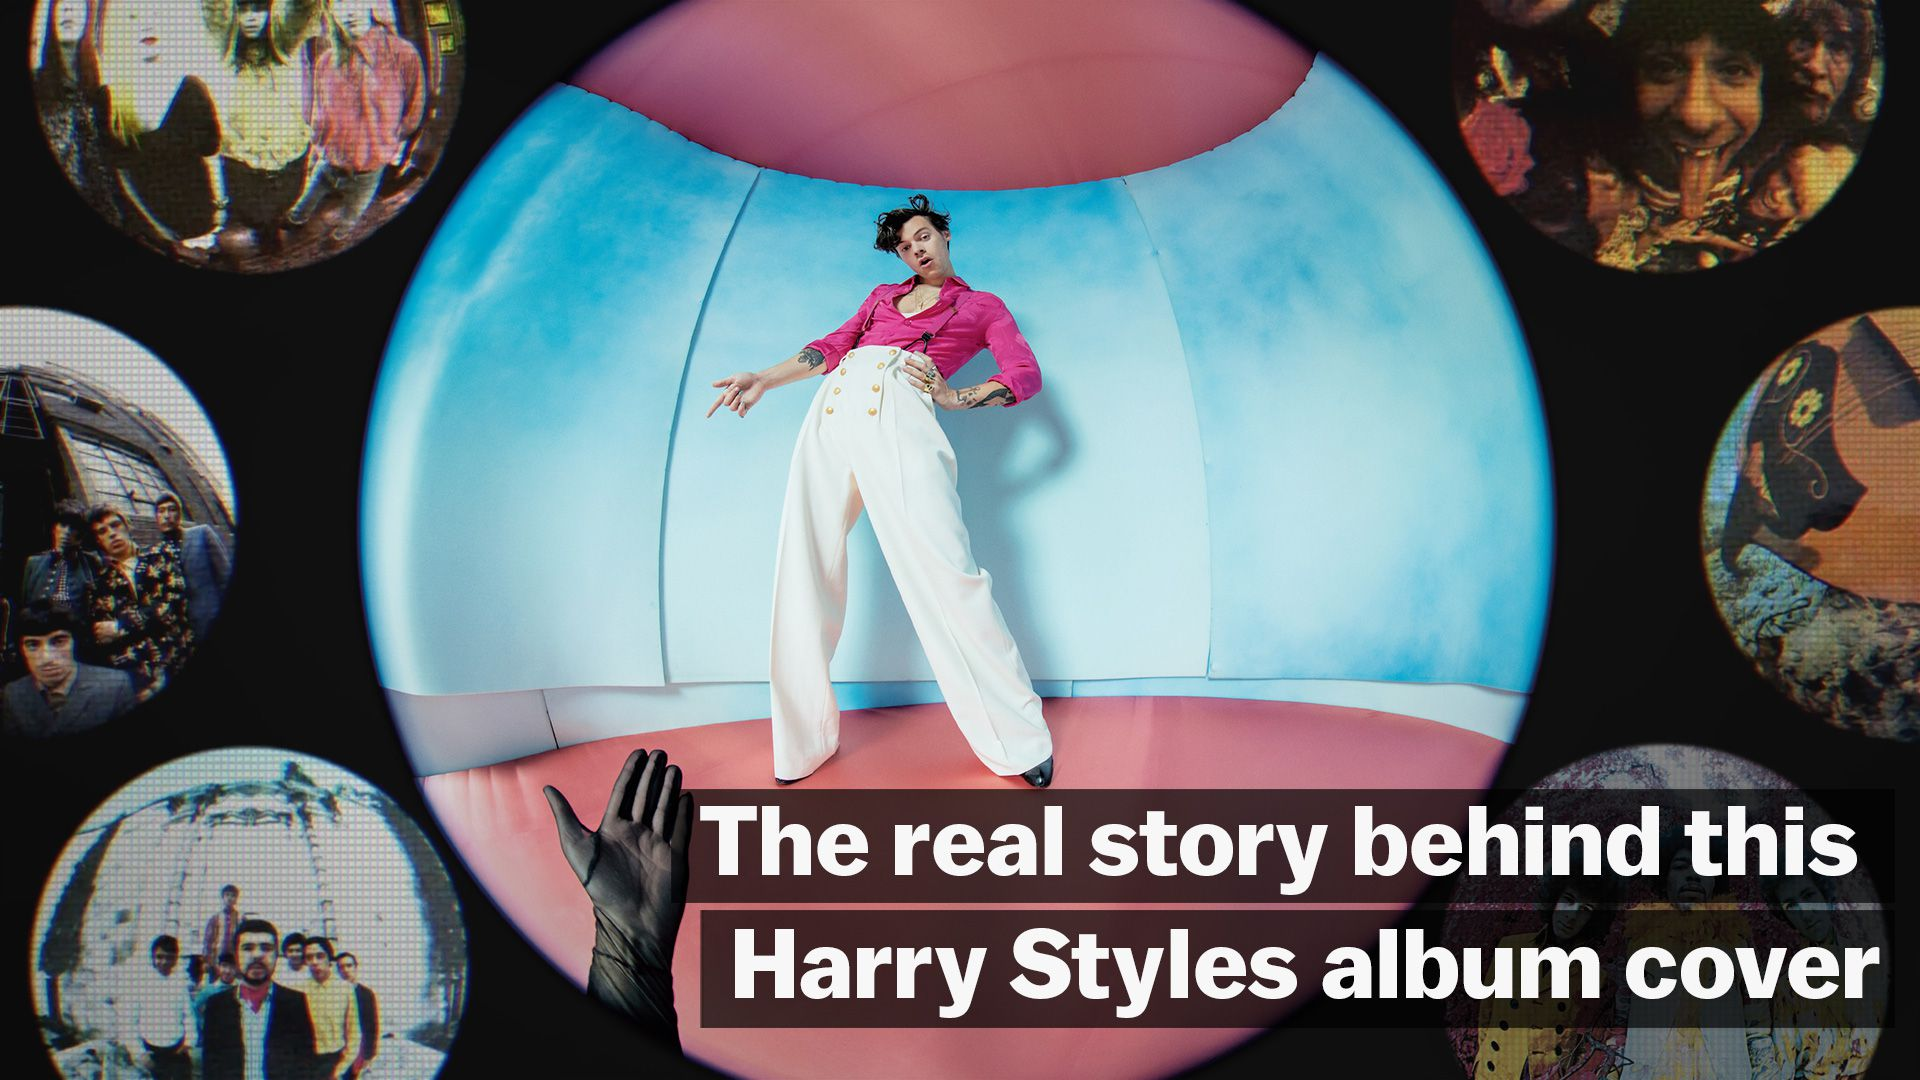 The Real Story Behind This Harry Styles Album Cover Vox